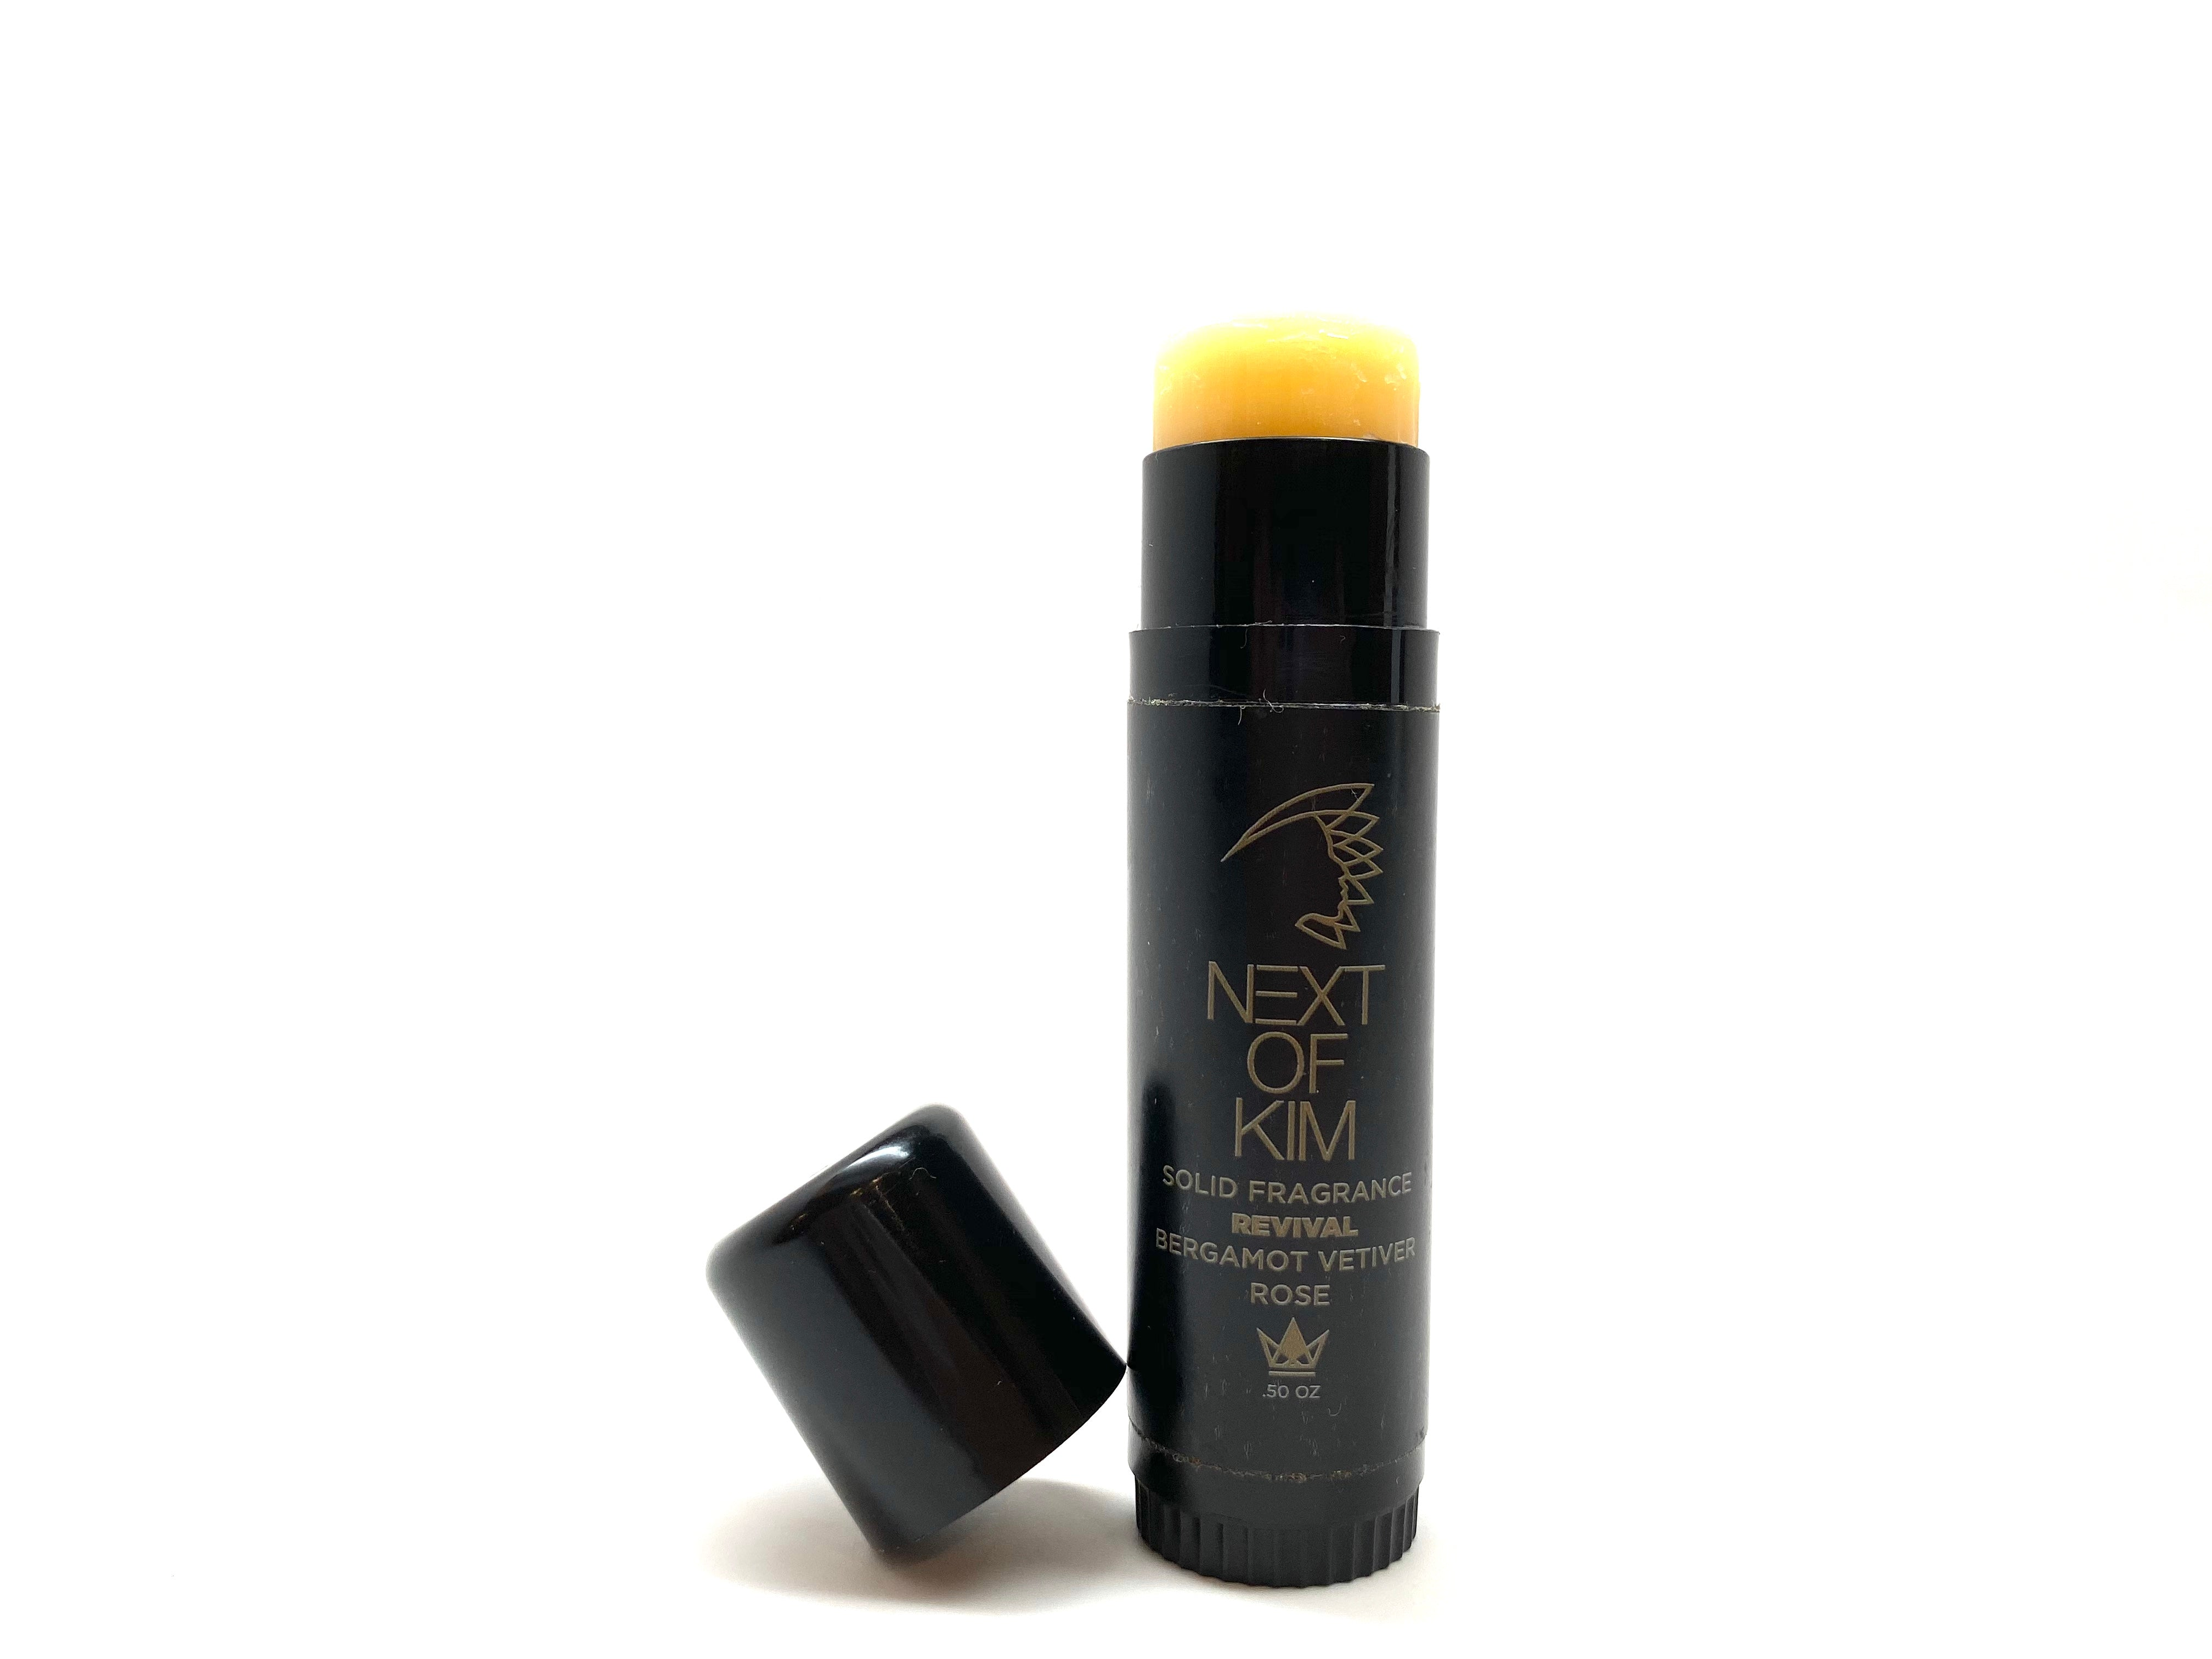 NOK Solid Fragrance Stick in Revival